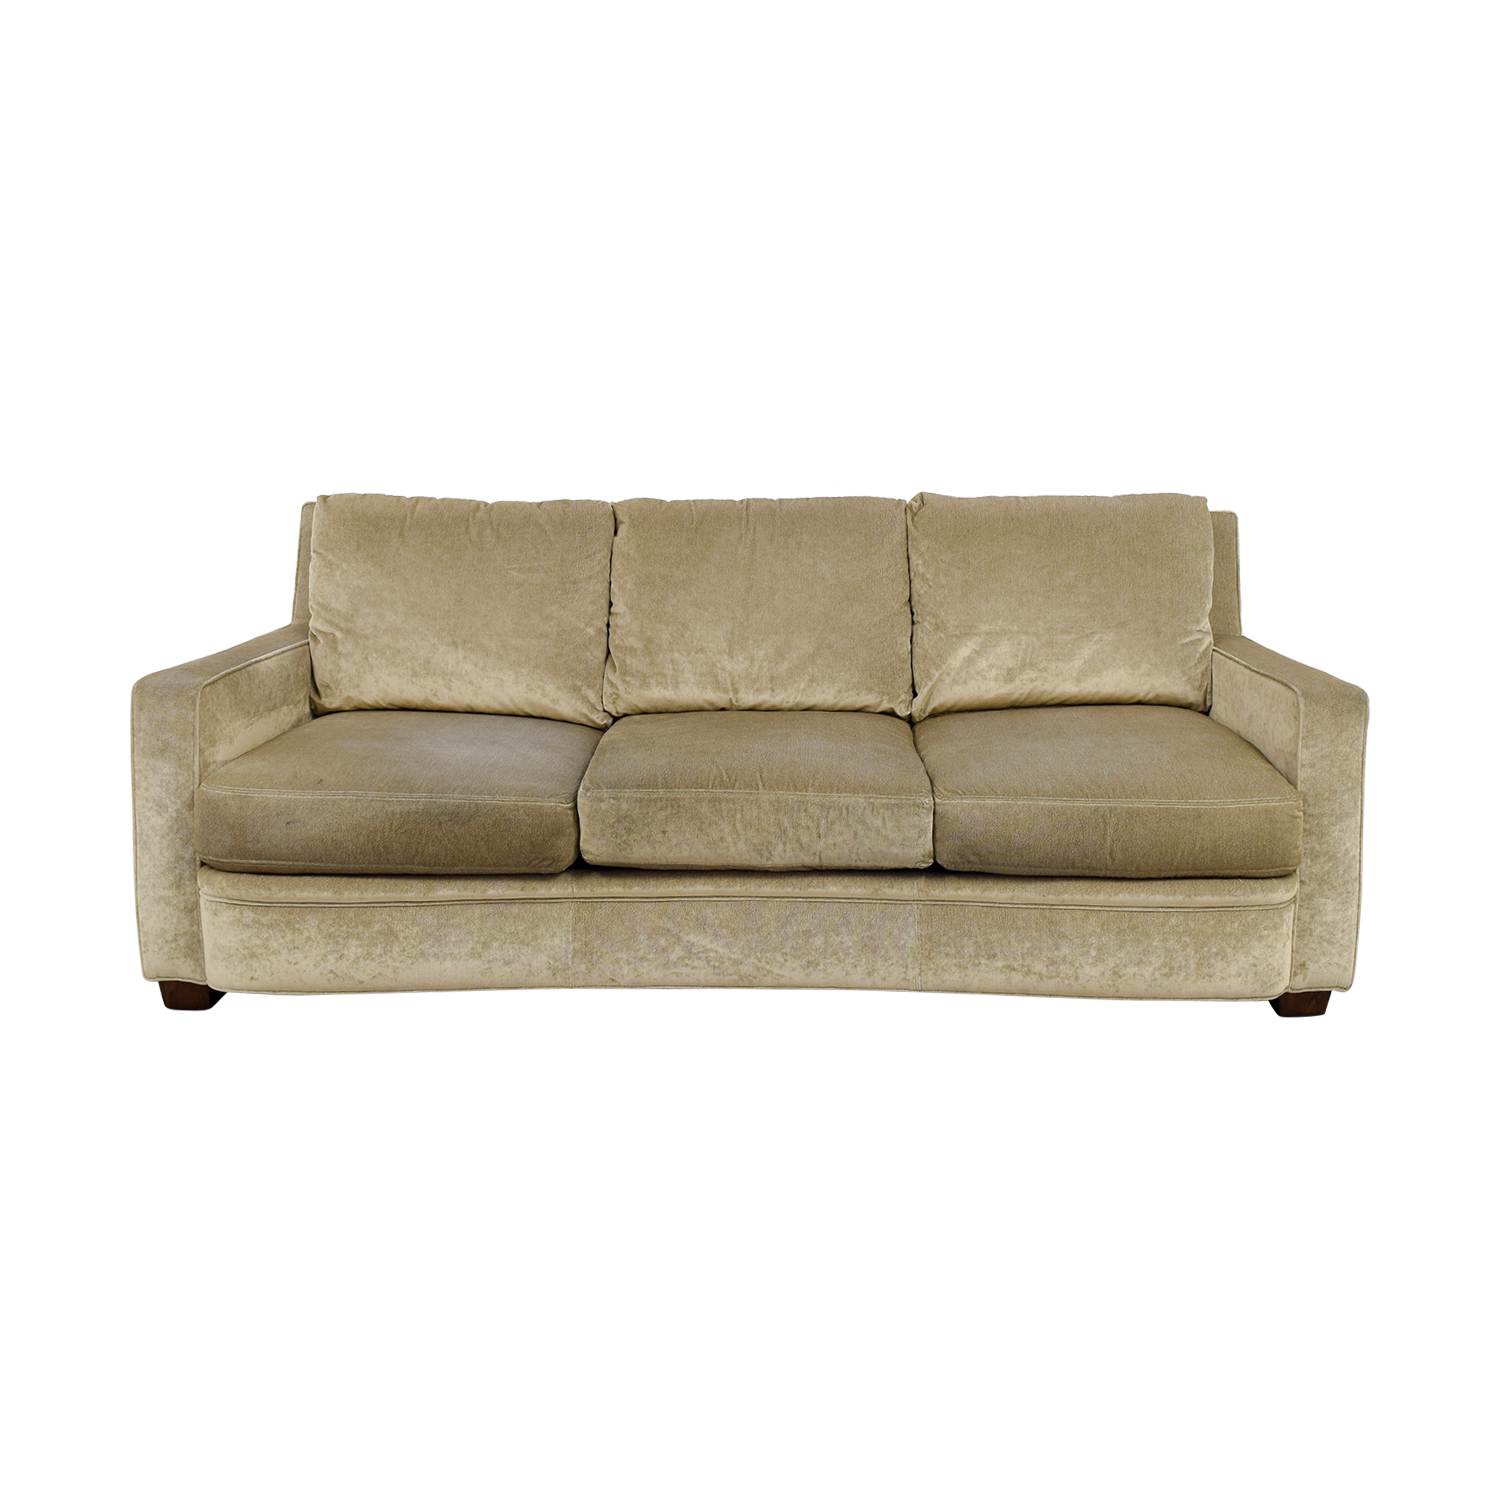 Kravit Furniture Kravit Furniture Beige Three-Cushion Curved Sofa